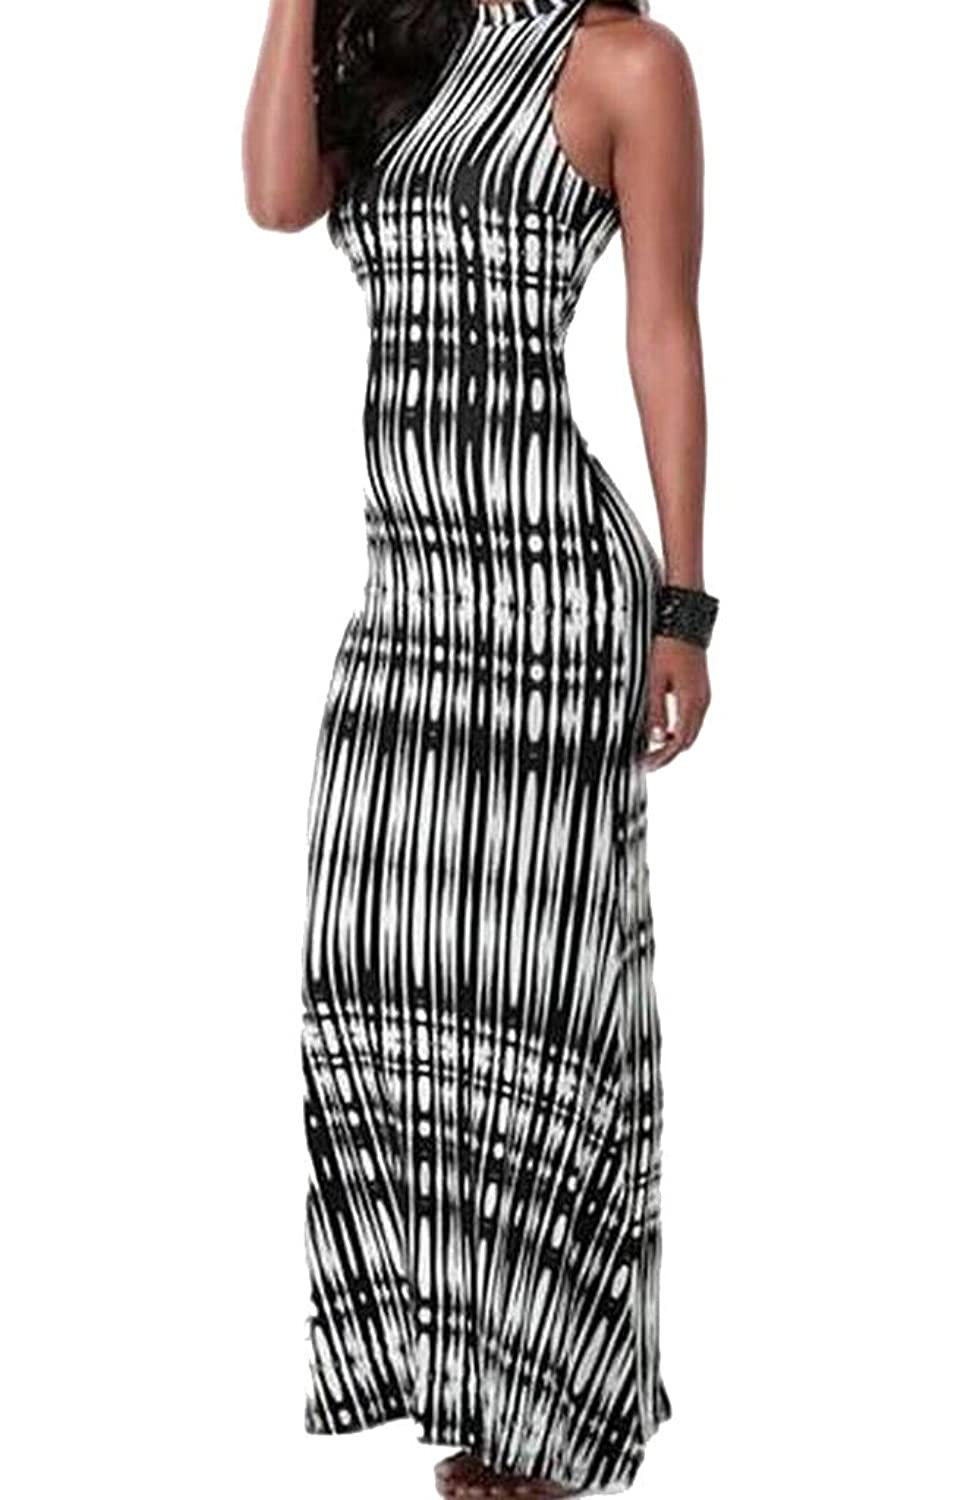 ASL Women's Sleeveless Slim Fit Sexy Cocktail Dress Party Dress